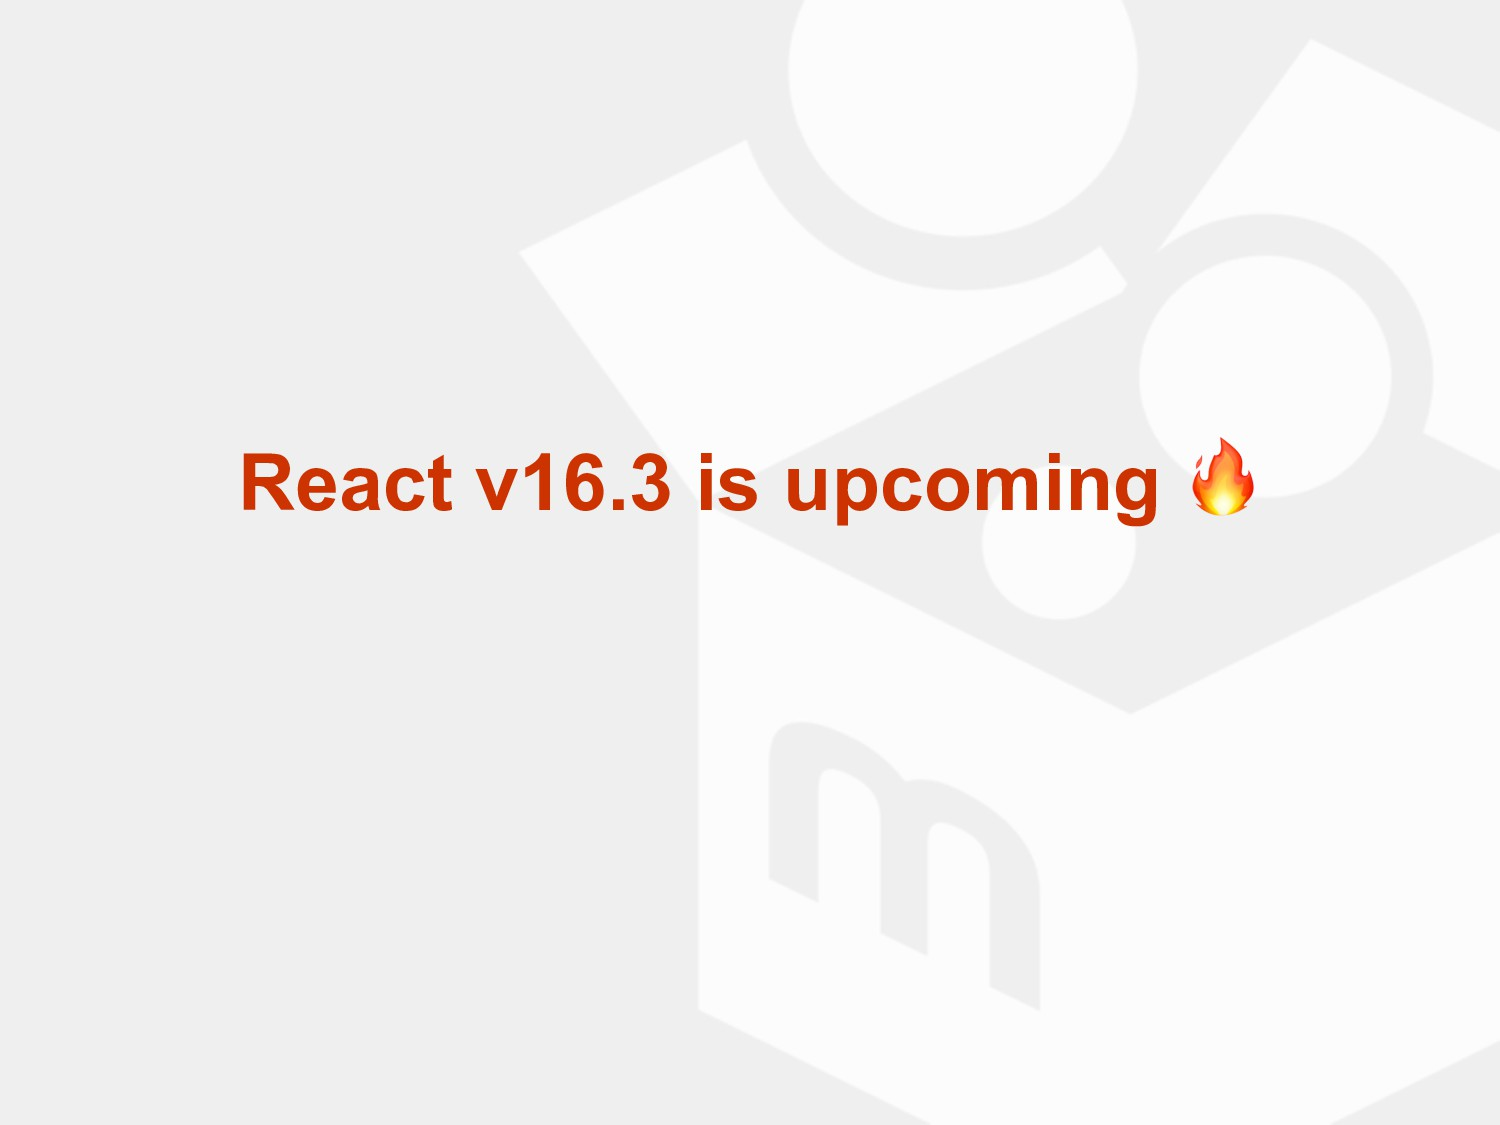 React v16.3 is upcoming